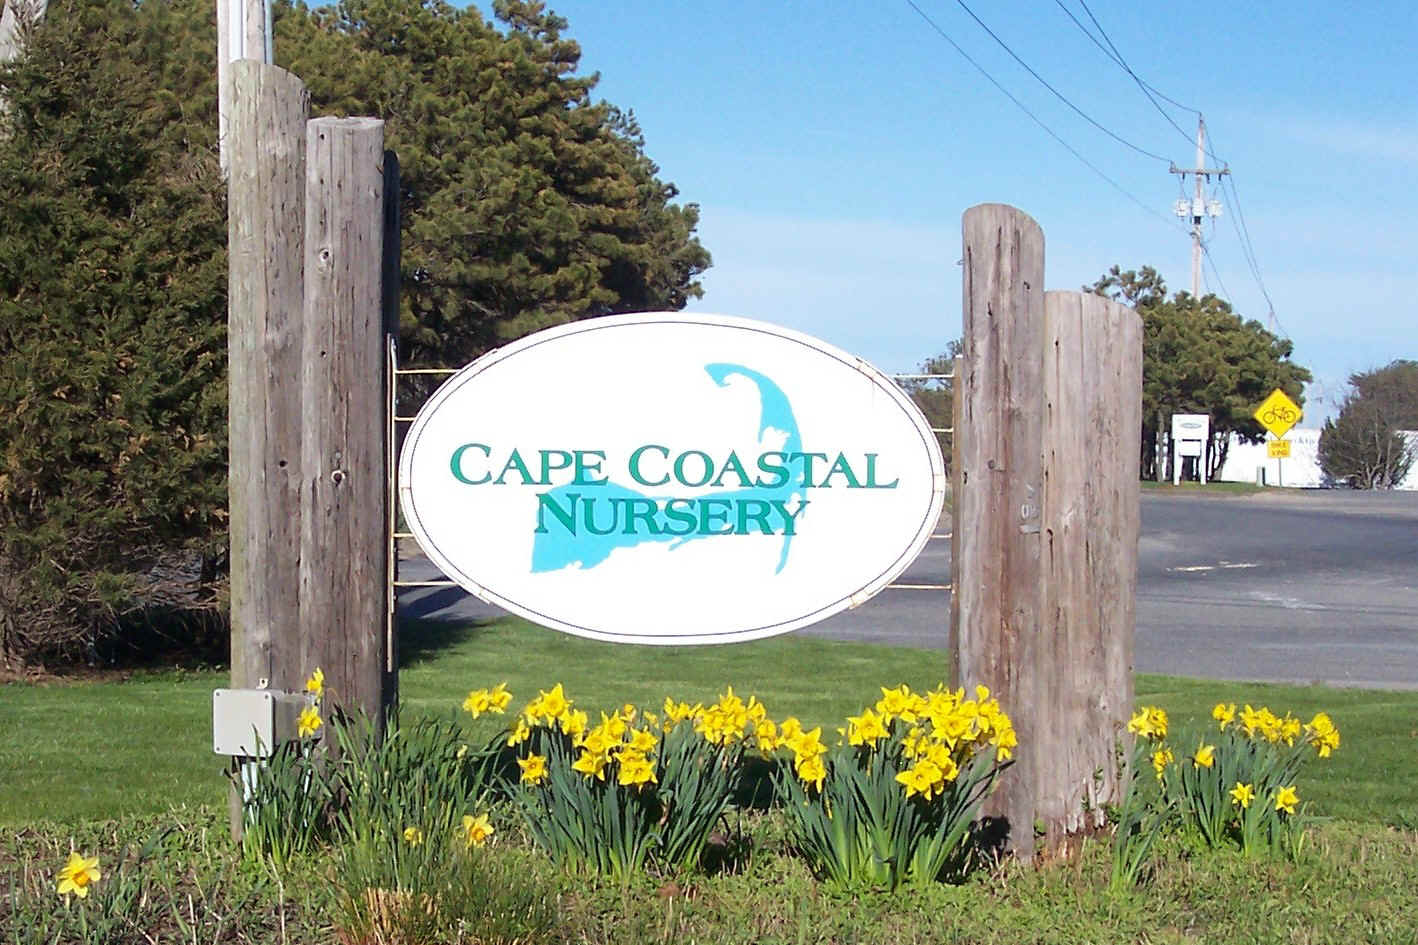 Cape Coastal Nursery